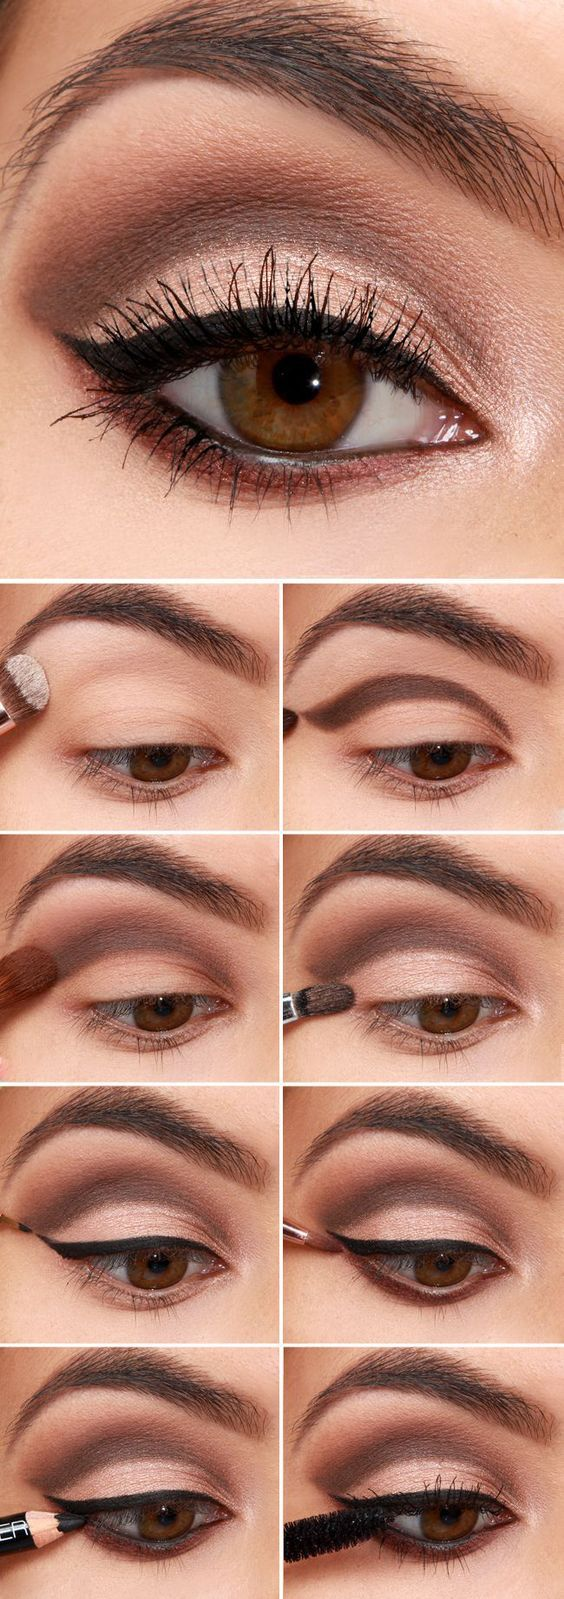 32 easy step by step eyeshadow tutorials for beginners eyeshadow step by step eyeshadow tutorials baditri Image collections